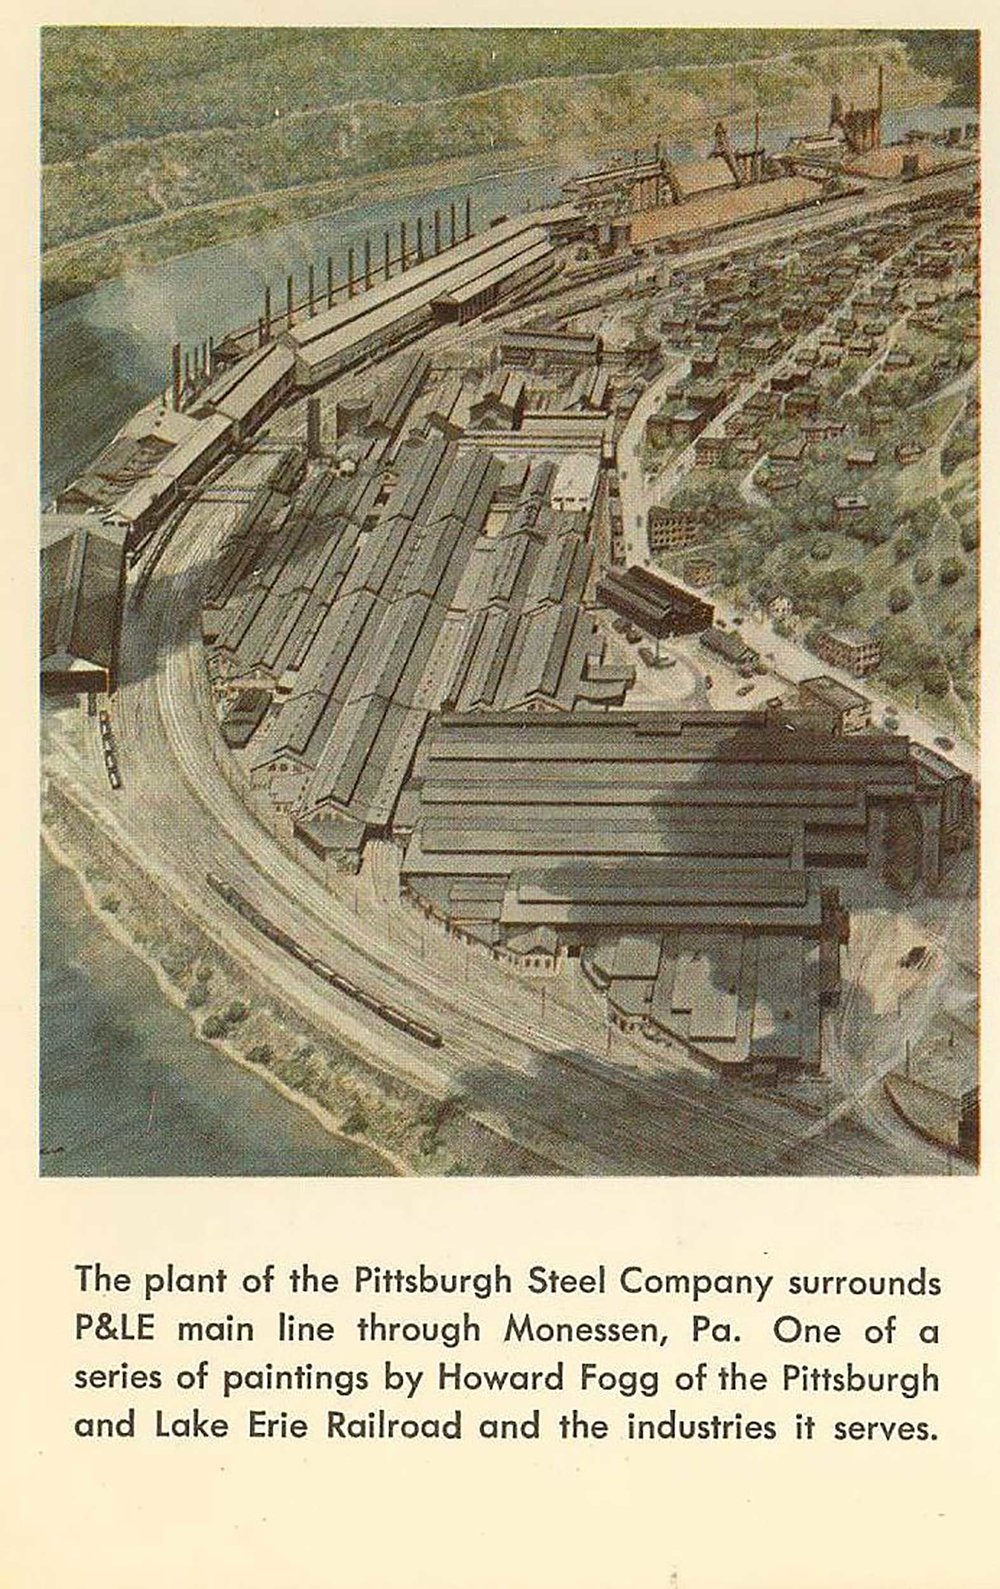 P&LE-Postcard-by-Howard-Fogg---Pittsburgh-Steel-Company,-Monesson,-PA.jpg